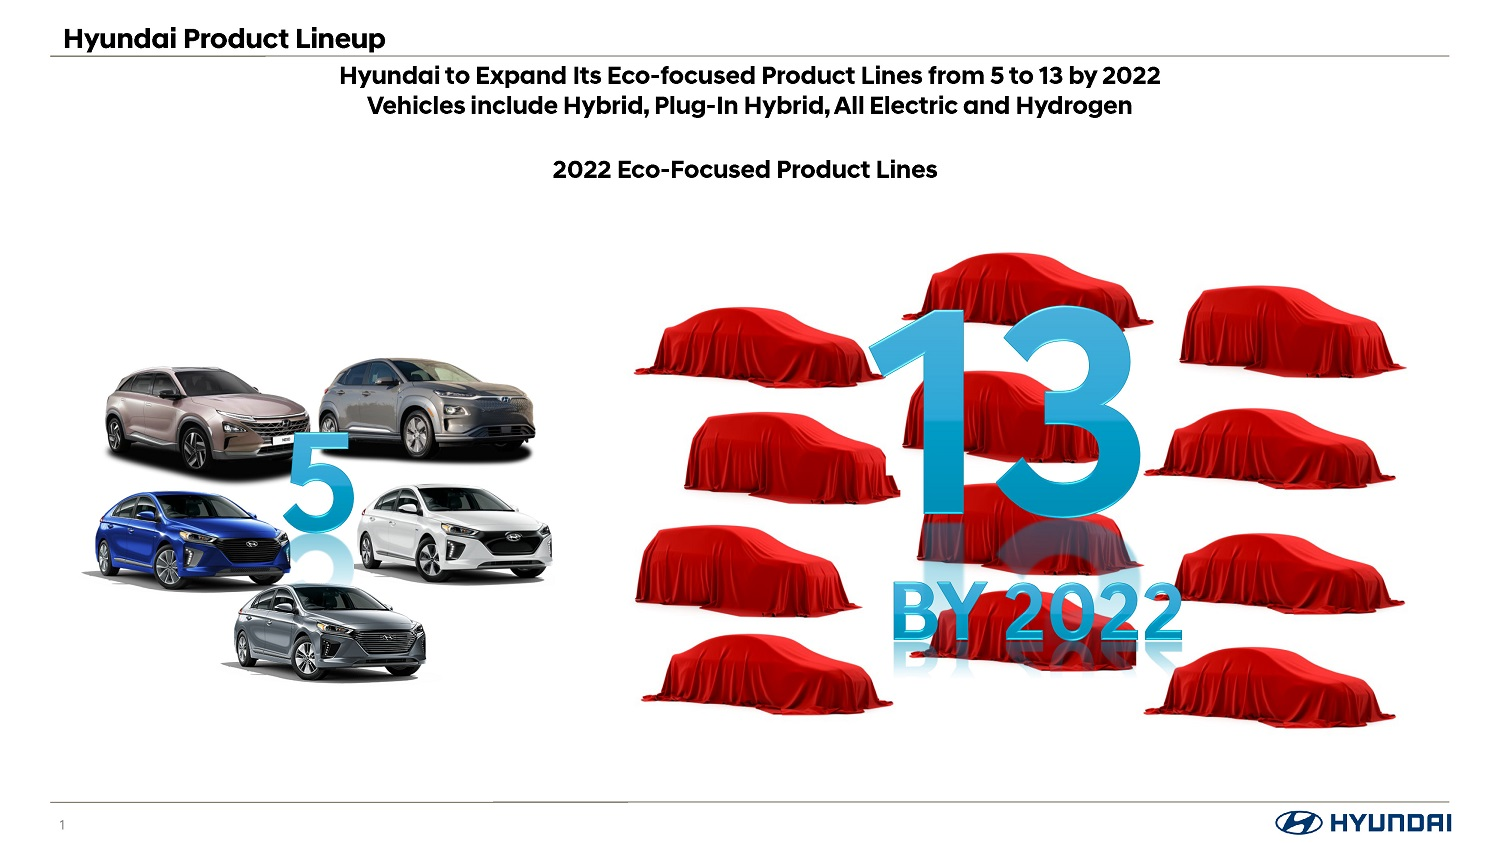 Hyundai to Expand Its Eco-focused Product Lines to 13 by 2022